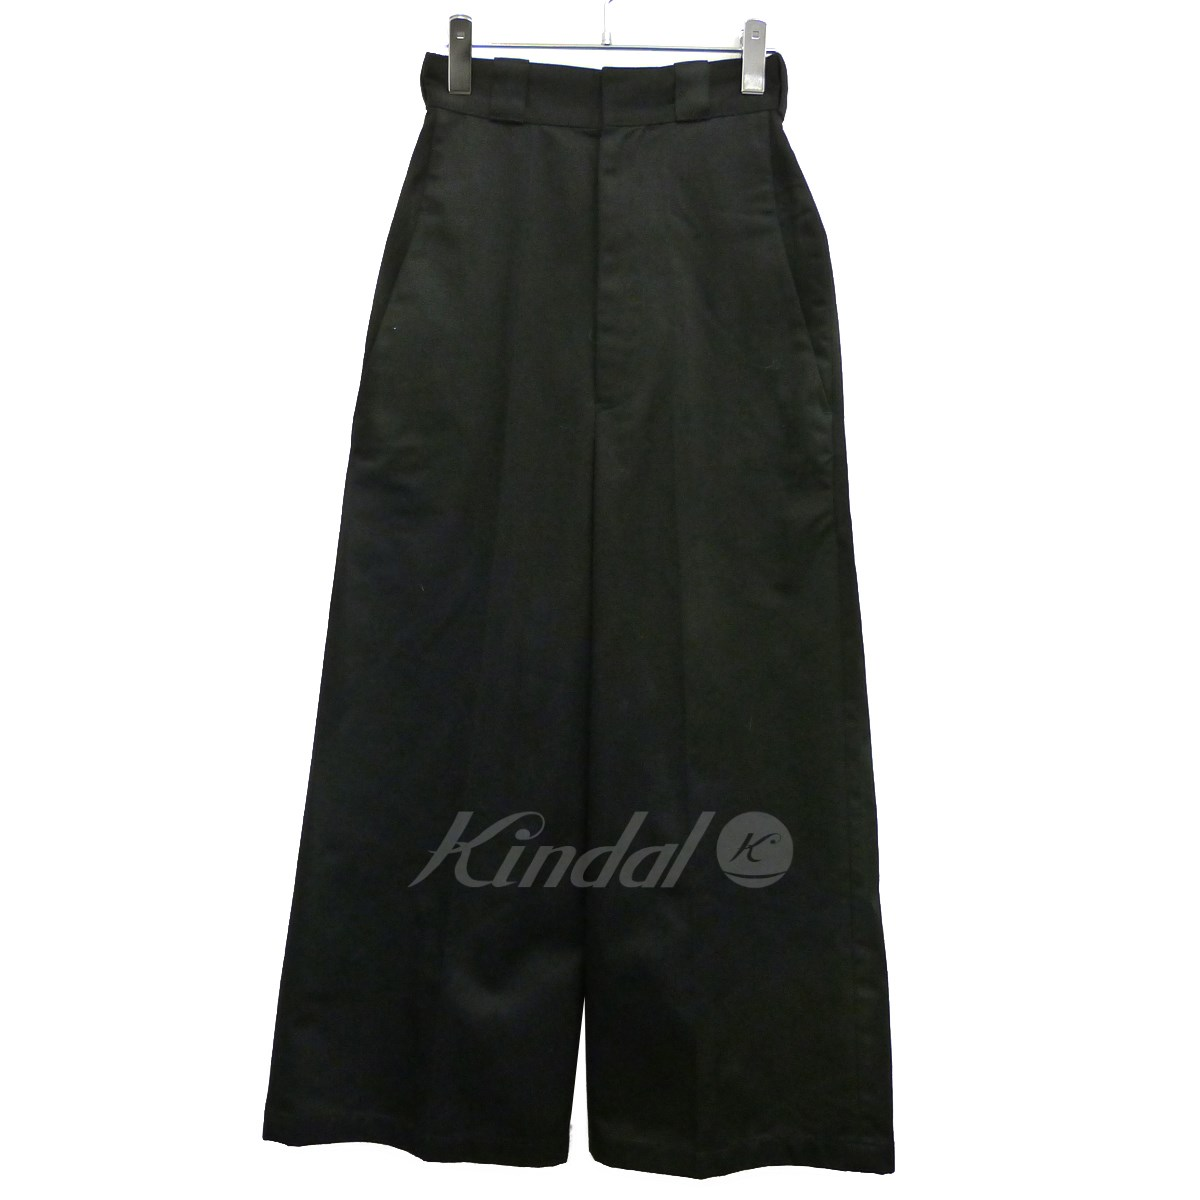 【中古】TAKESHI KOSAKA by Ys Pink Label 17AW ワイドワークパンツ 【送料無料】 【164206】 【KIND1551】